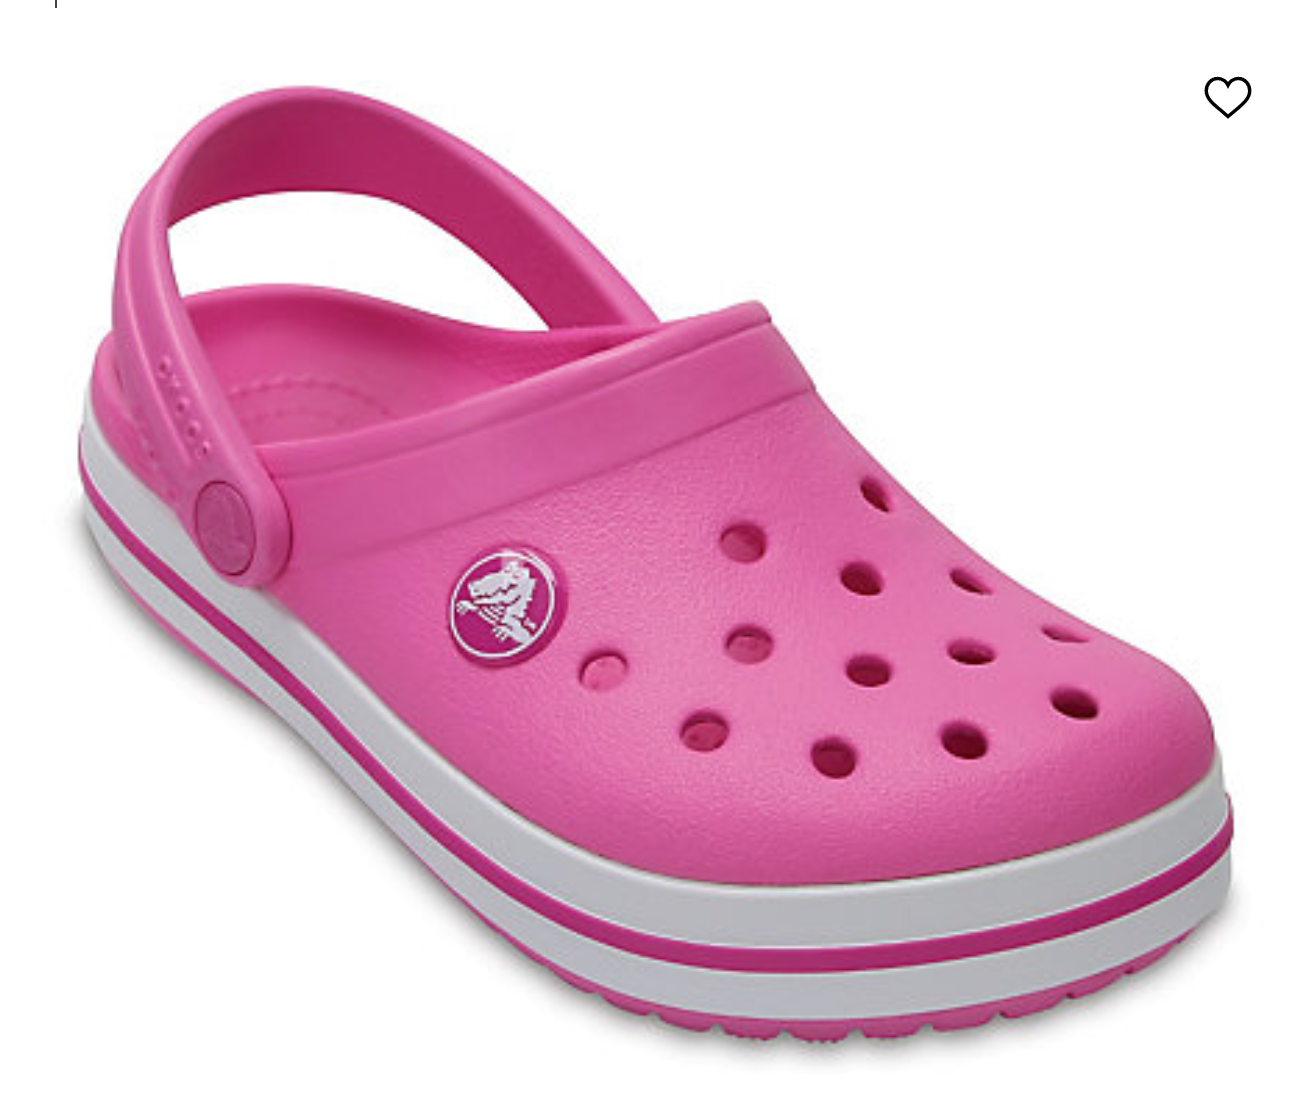 Crocs Canada: Up to 60% off Sale Styles